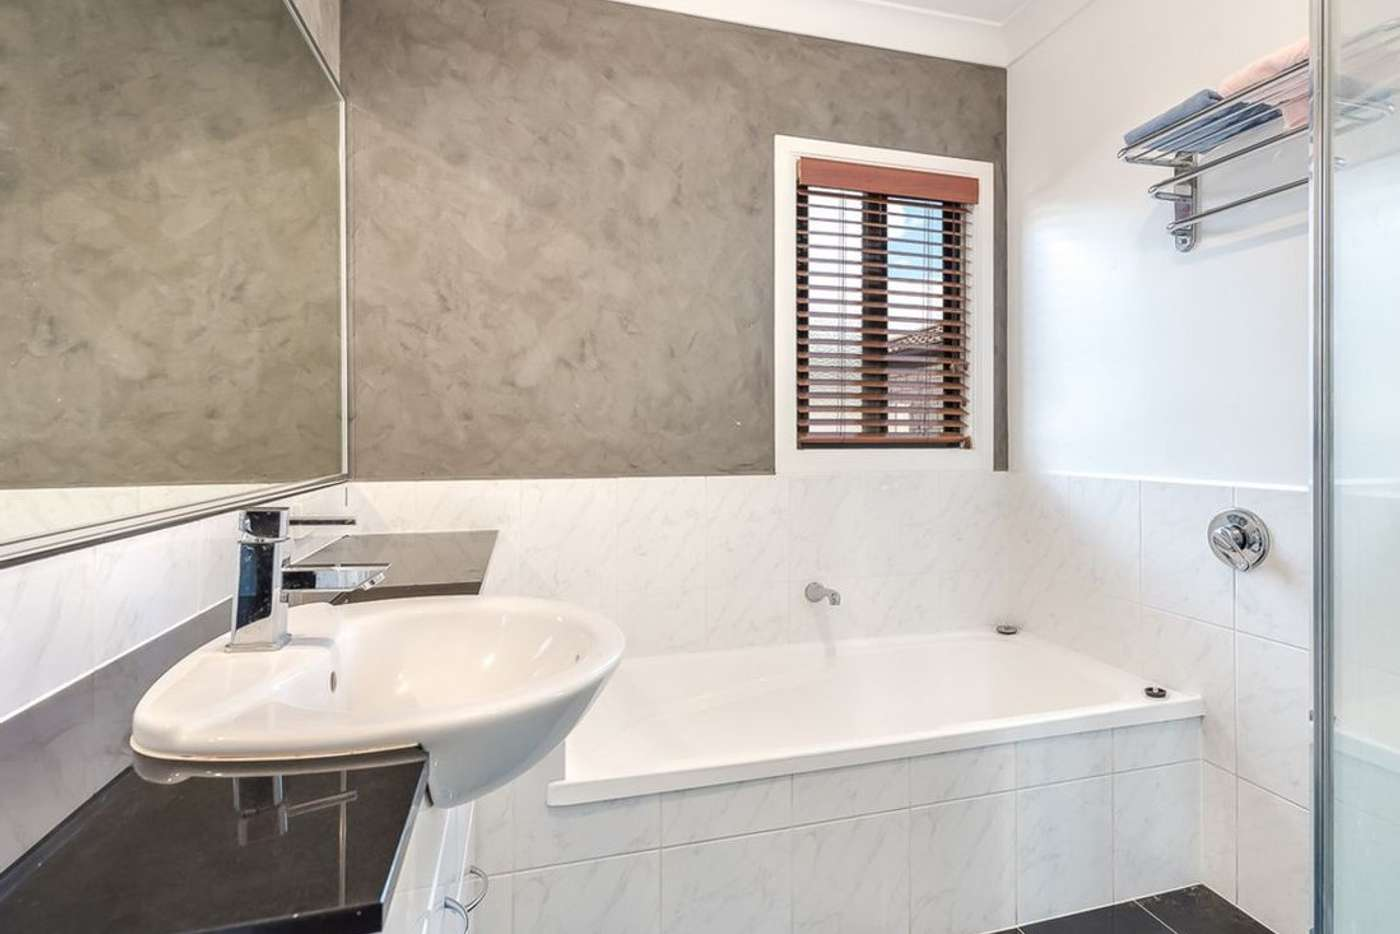 Seventh view of Homely house listing, 73 Stevens Street, Southport QLD 4215